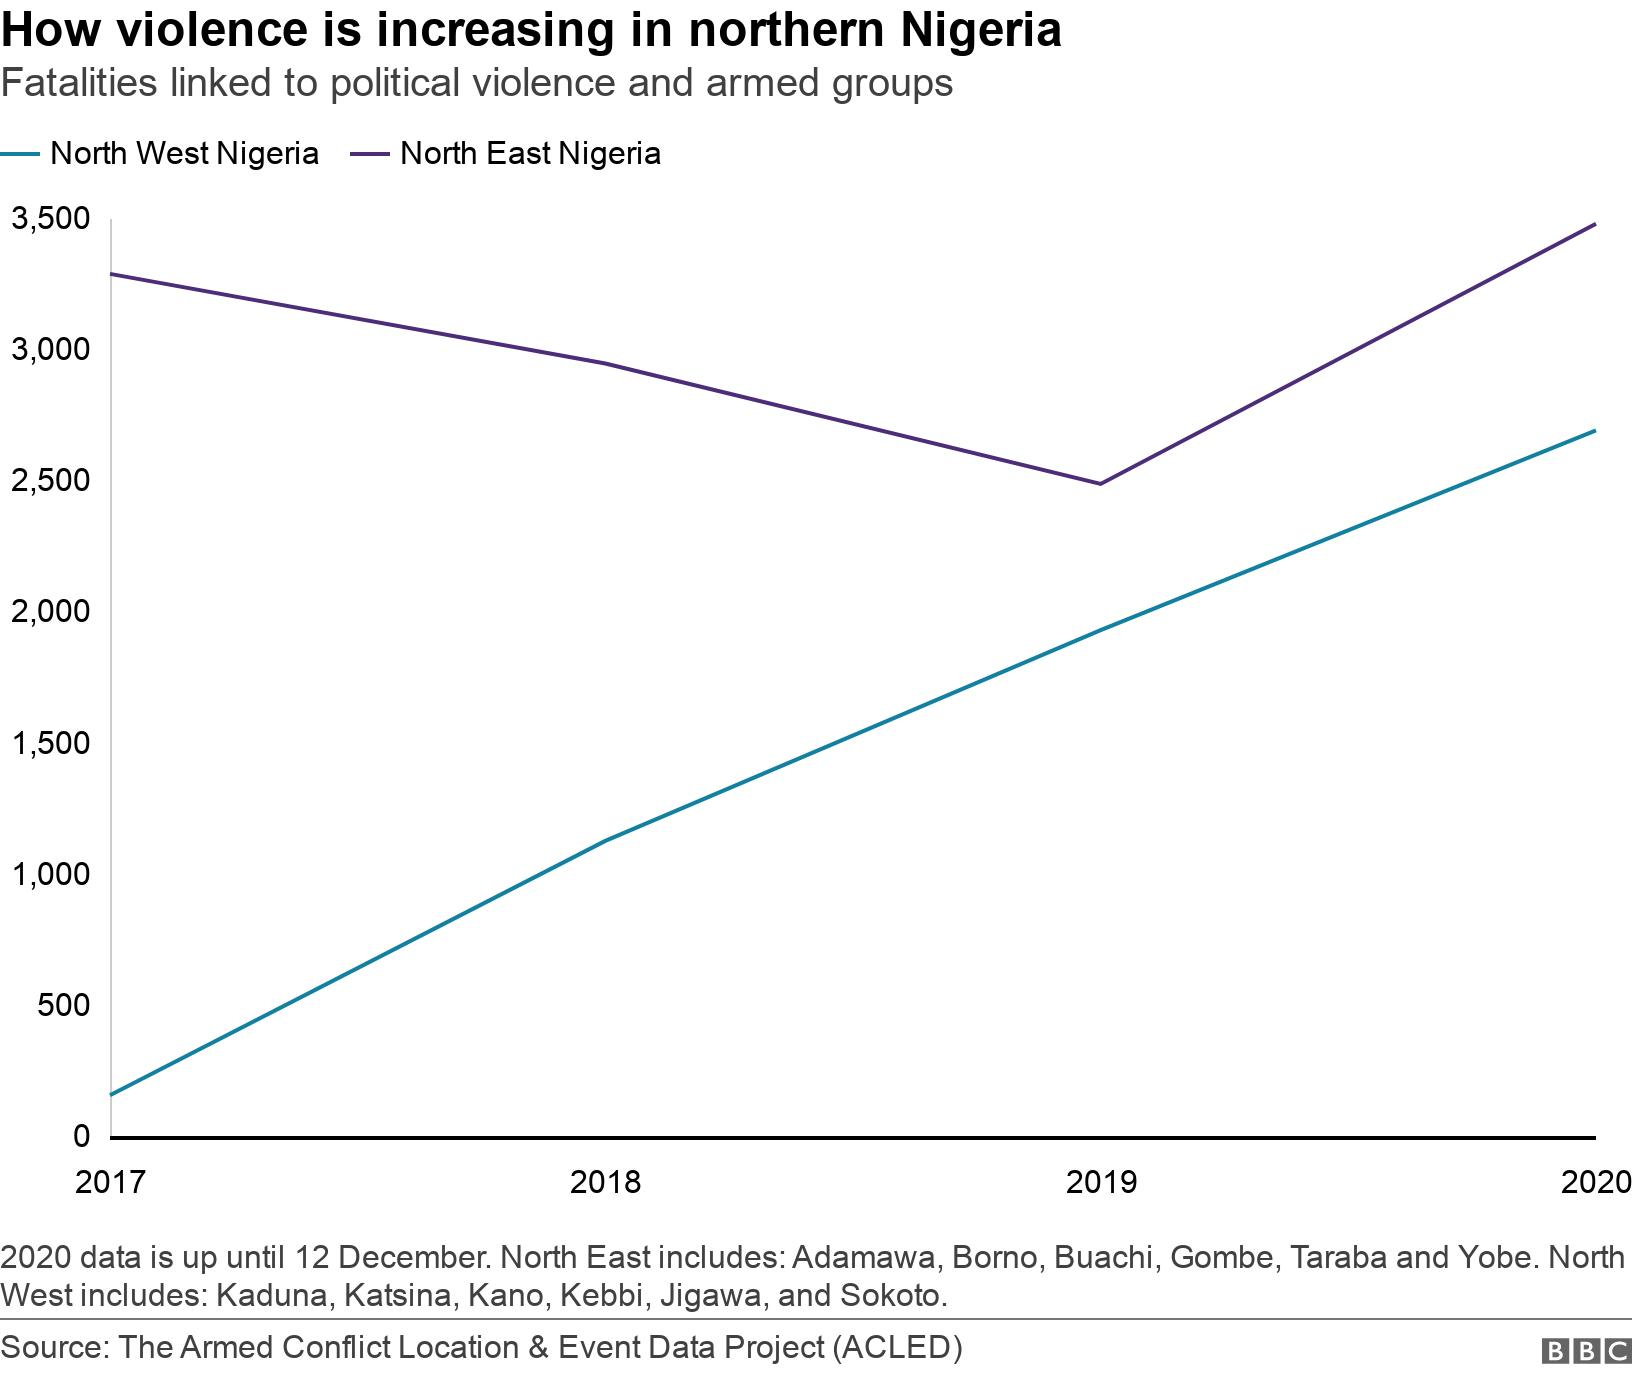 How violence is increasing in northern Nigeria . Fatalities linked to political violence and armed groups .  2020 data is up until 12 December. North East includes: Adamawa, Borno, Buachi, Gombe, Taraba and Yobe. North West includes: Kaduna, Katsina, Kano, Kebbi, Jigawa, and Sokoto. .